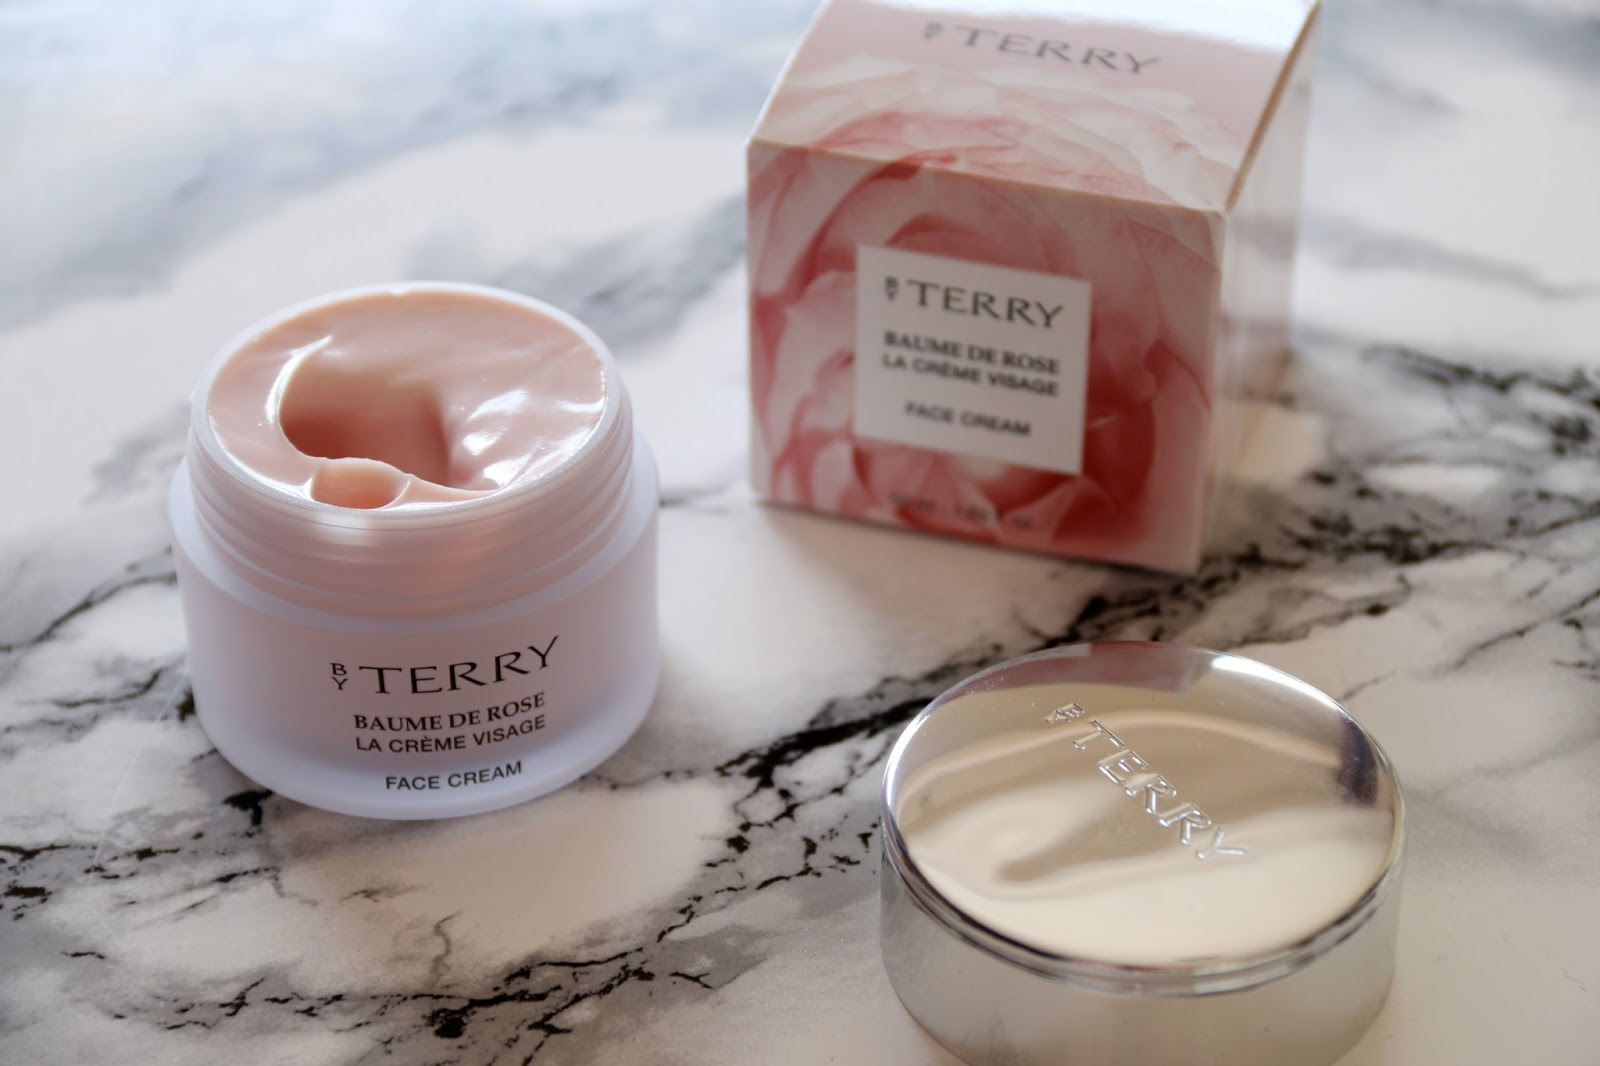 By Terry Baume de Rose Face Cream & Crystalline Lip Care Review